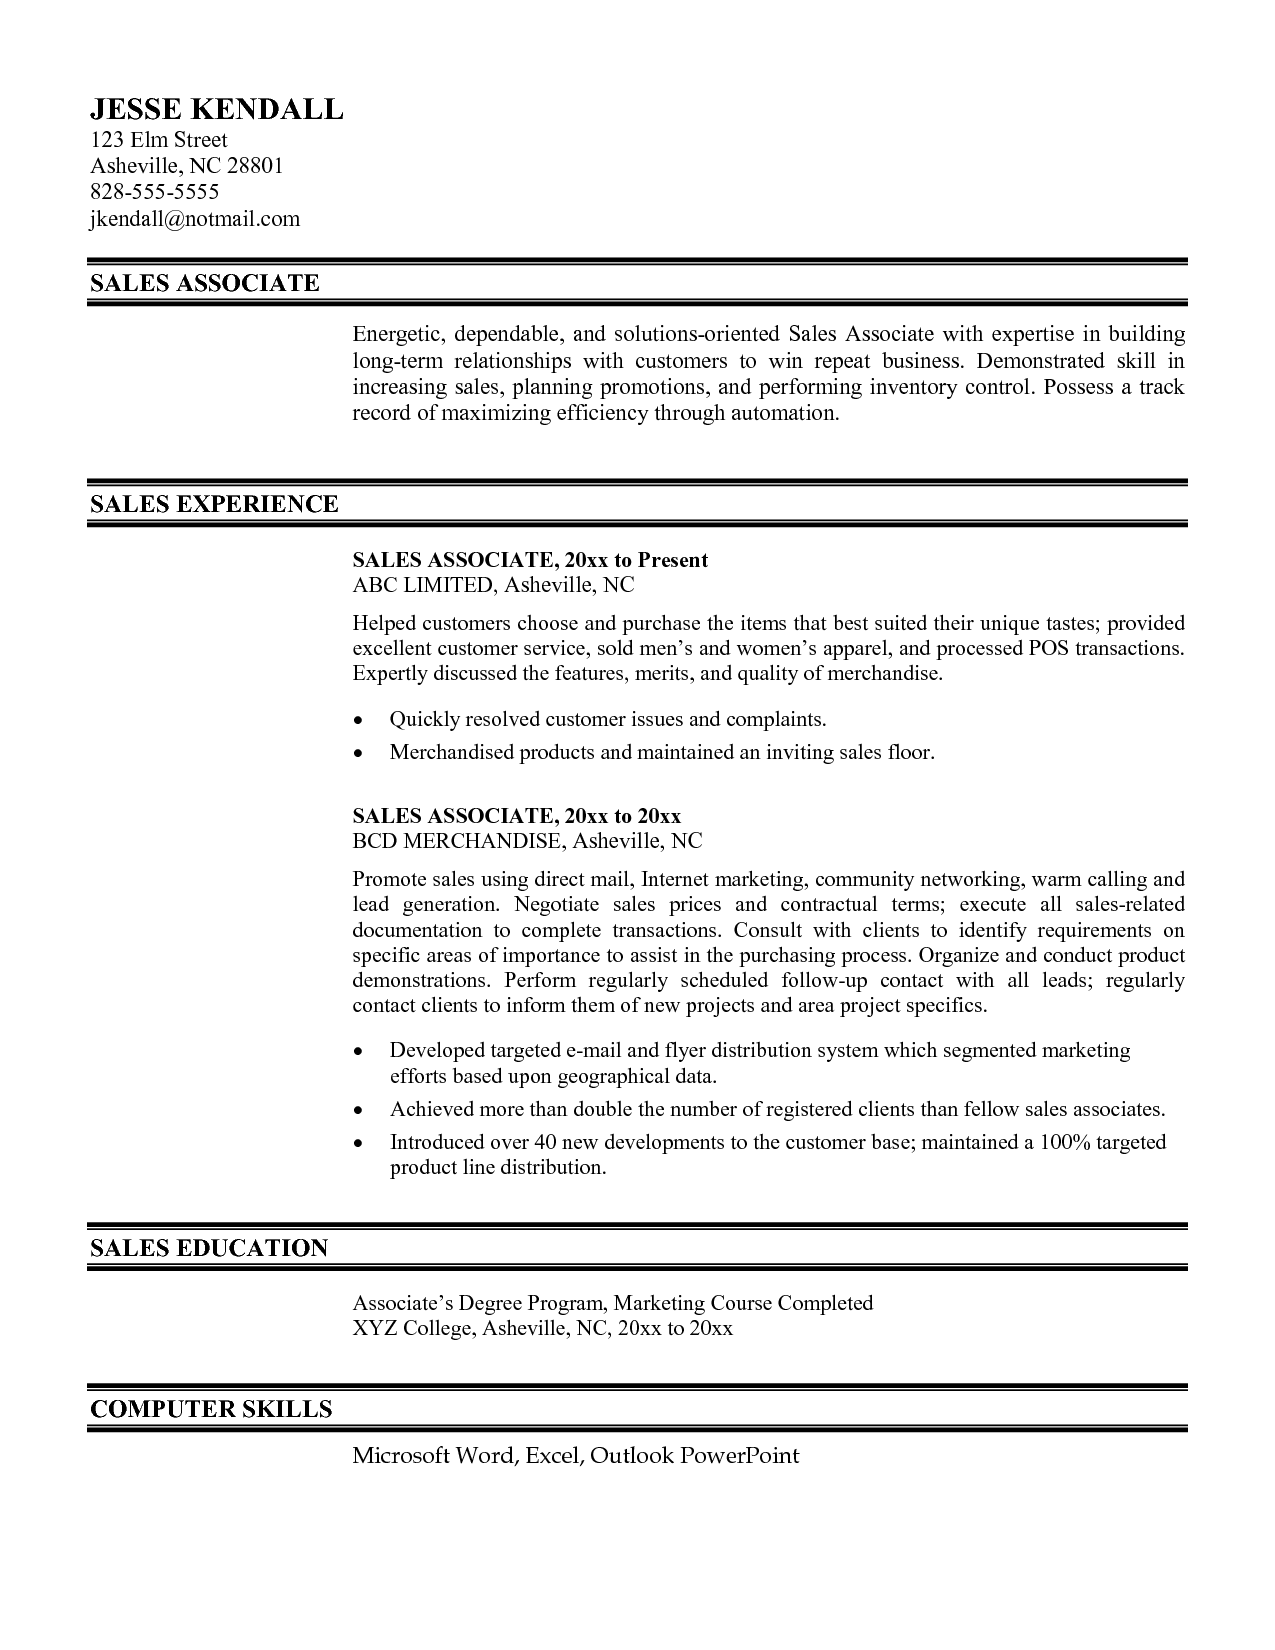 Resume Examples Over 40 Resume objective sample, Sales